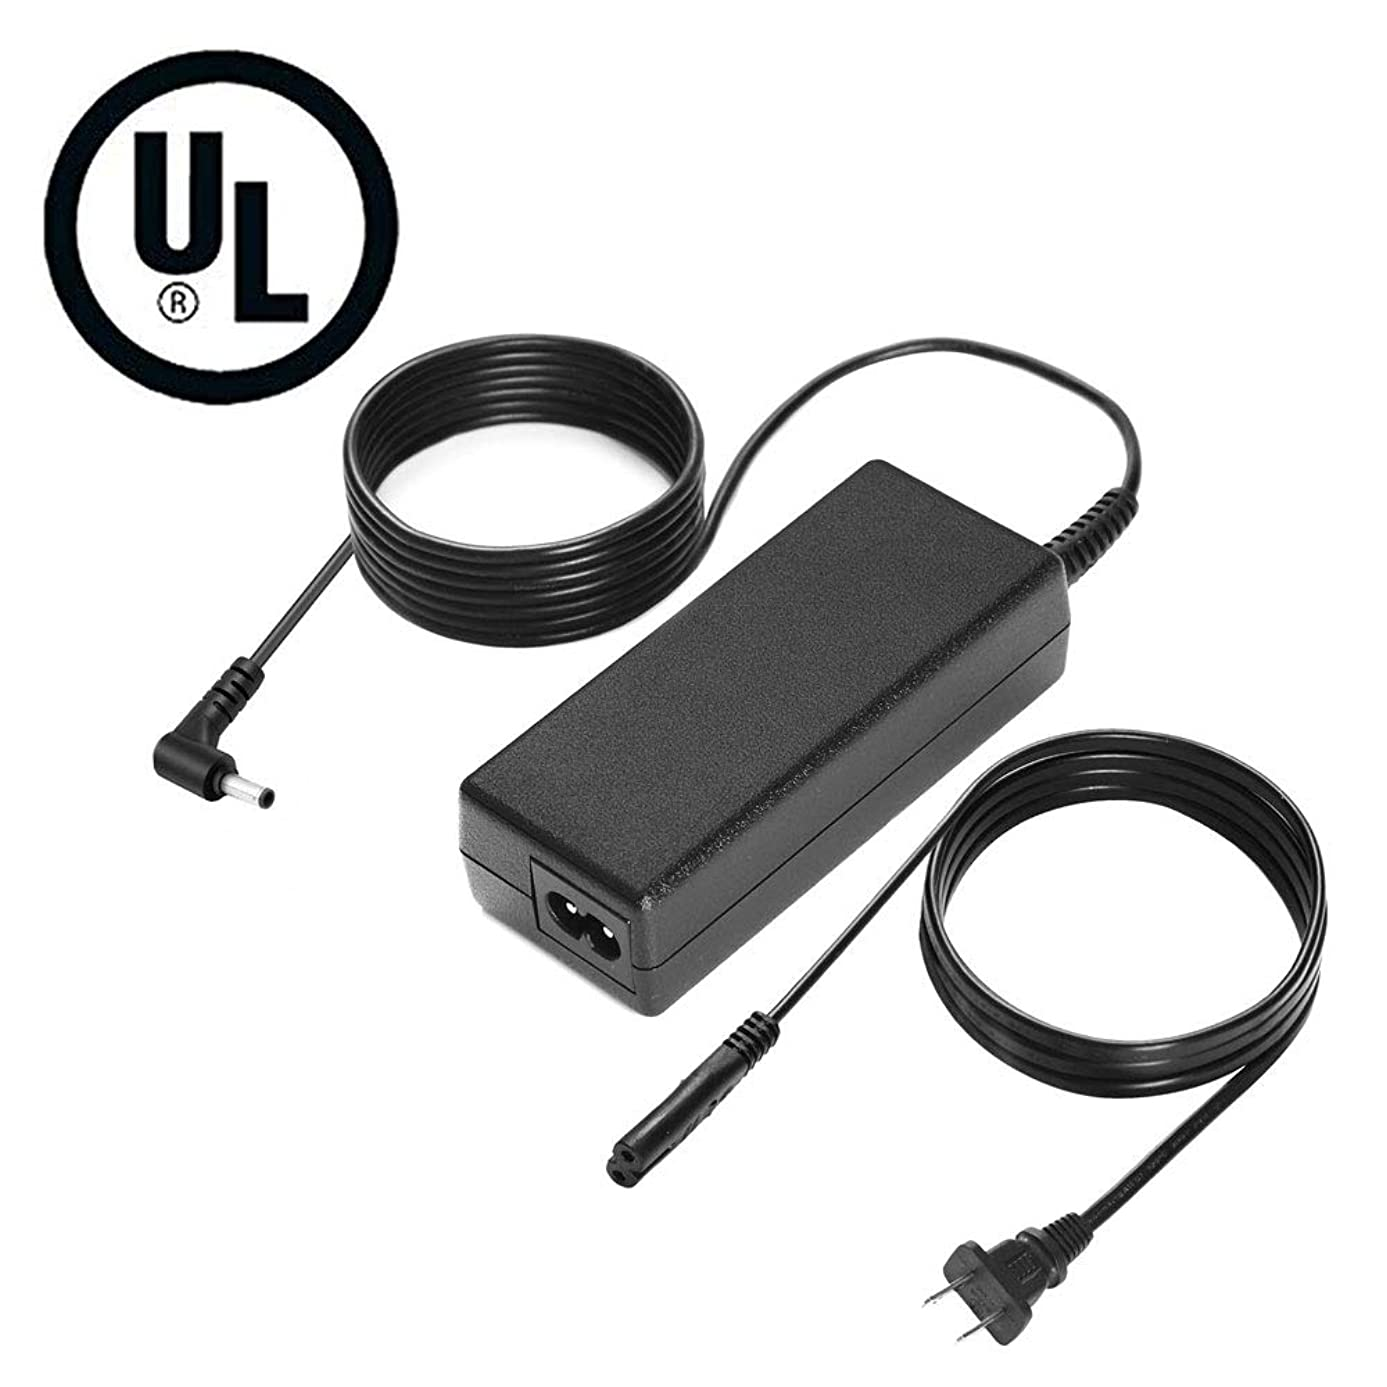 AC Charger Fit for Lenovo IdeaPad Flex 5 5-1470 5-1570 1470 1570 81CA 81C9 80XA 80XB Laptop Power Supply Adapter Cord